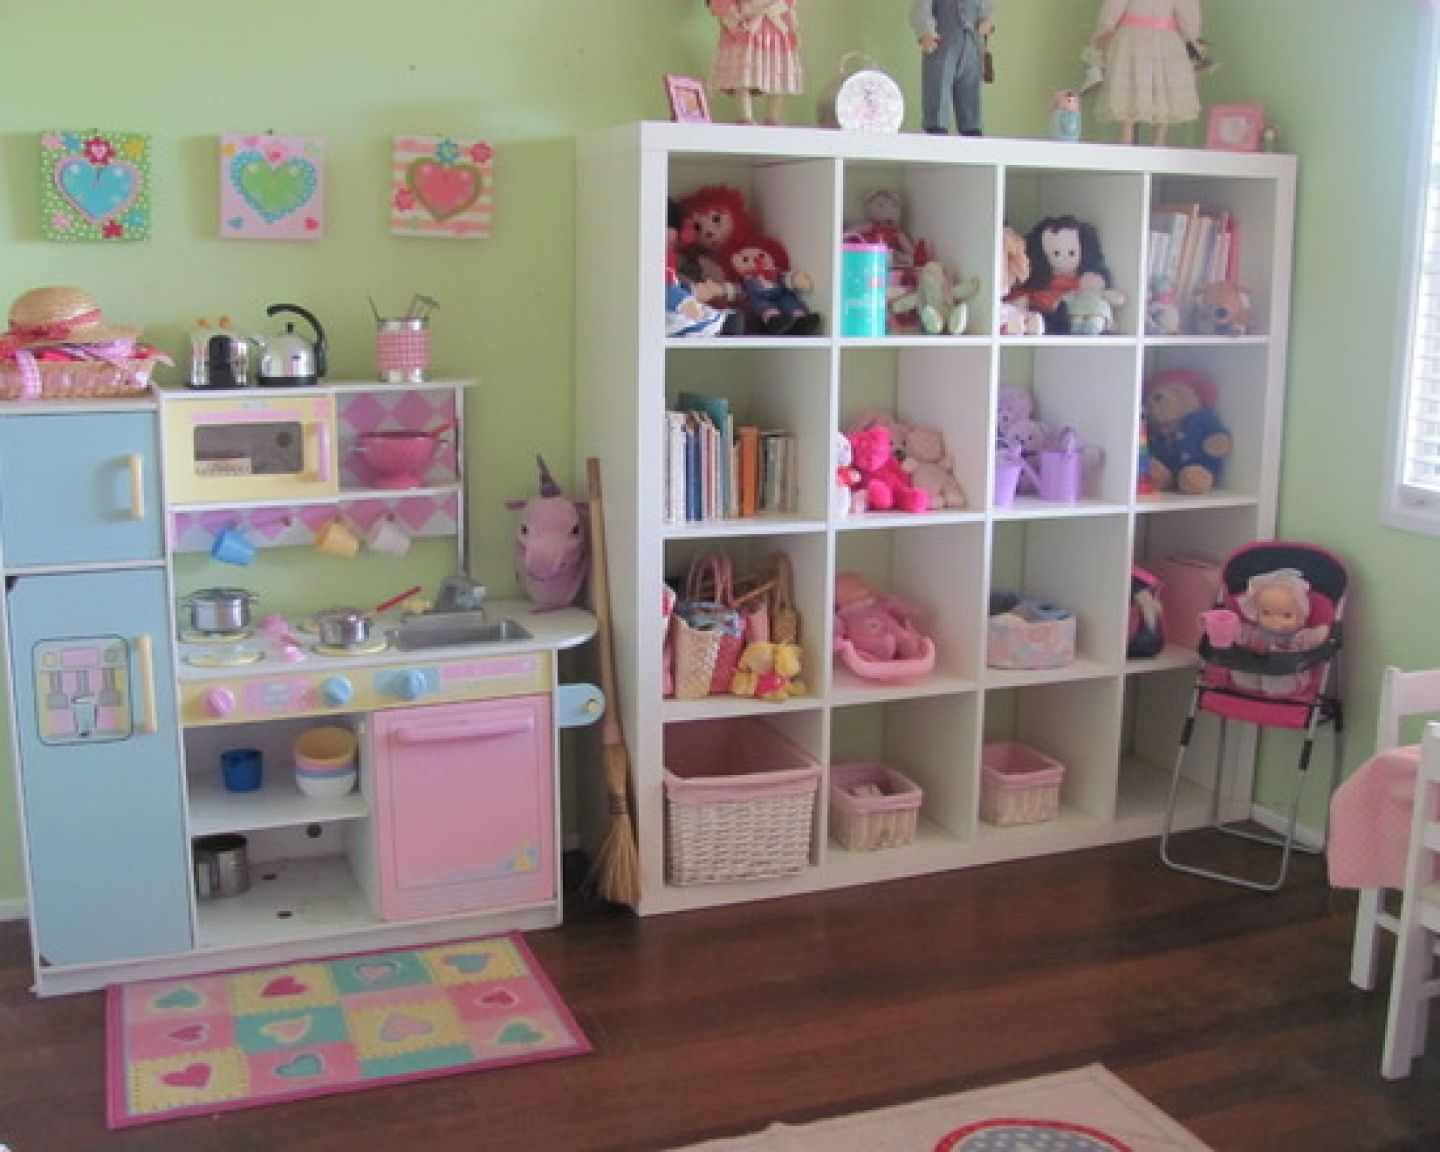 kids playroom furniture girls. 13 Minimalist Playroom Ideas For Girls Stylish On Decorating Design Pictures Remodel Decor And Kids Furniture Y